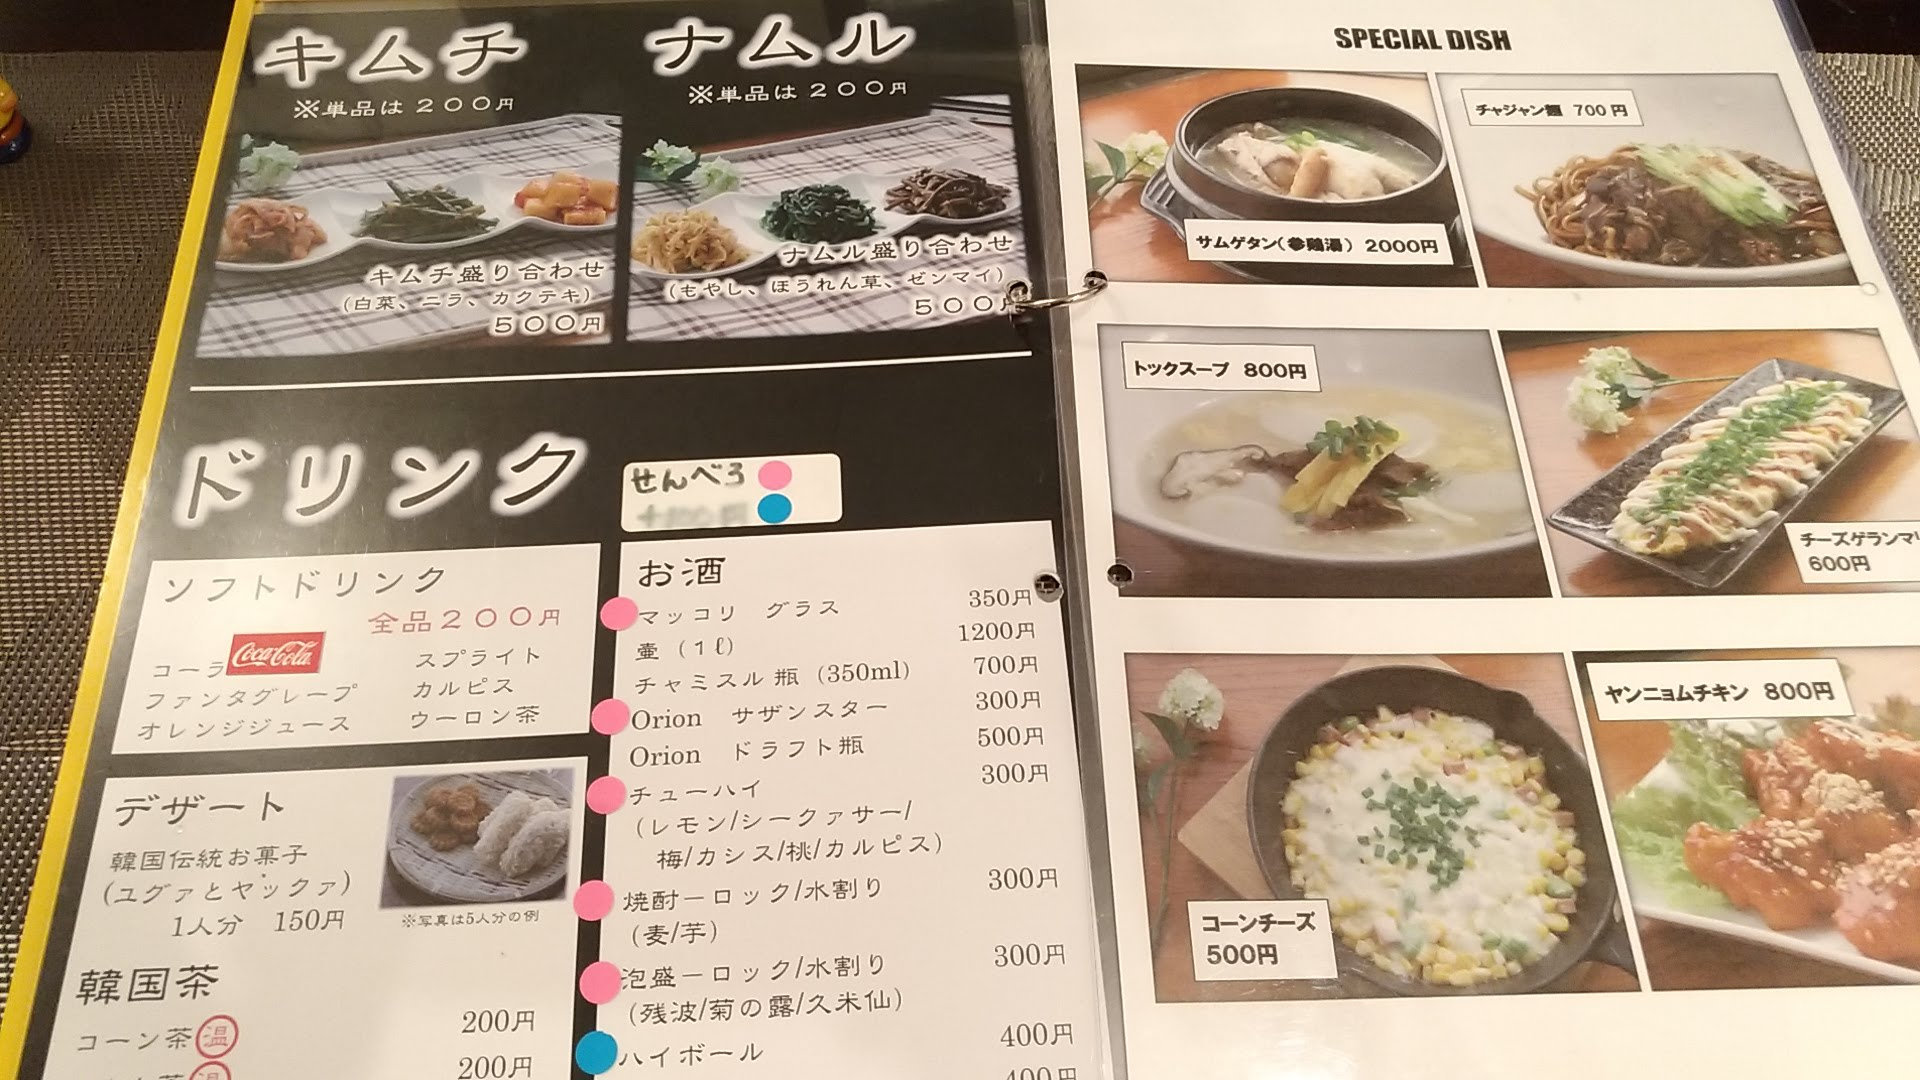 The menu of Gamihonten 3